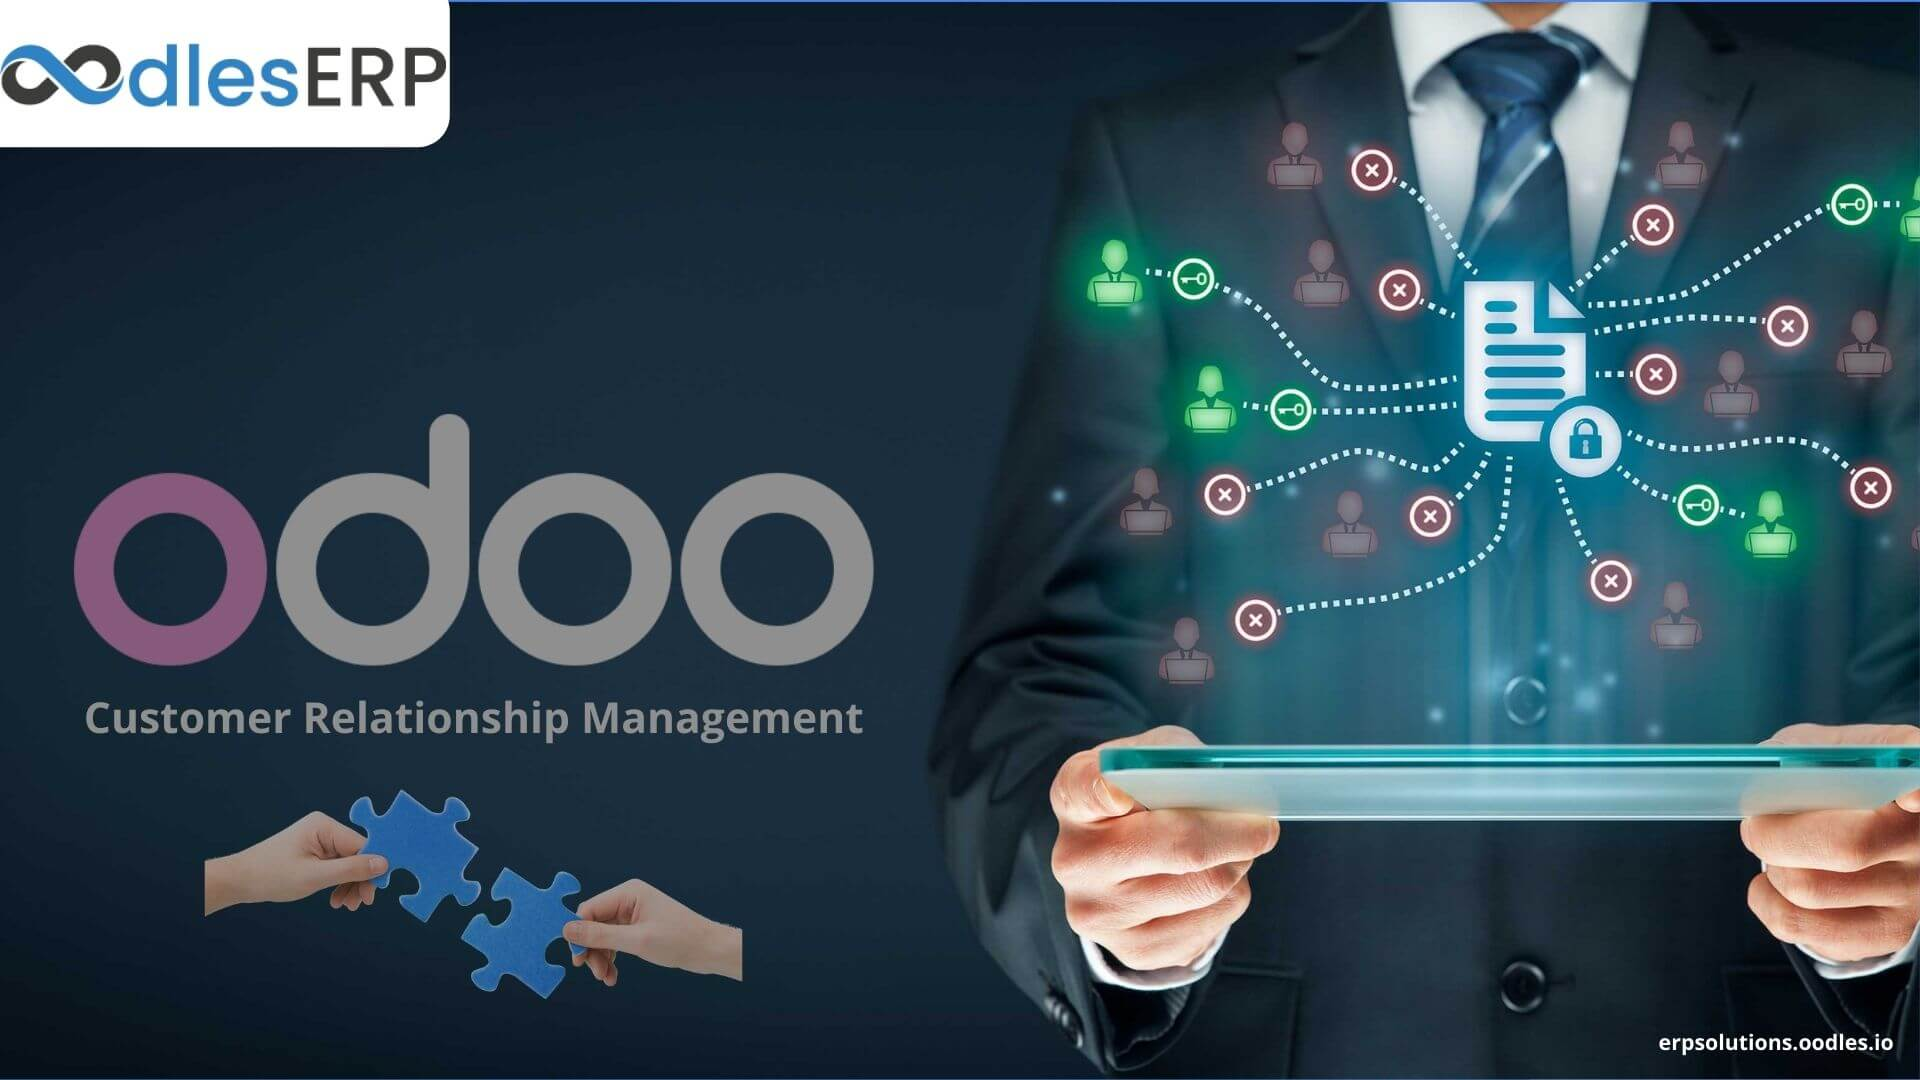 Odoo CRM Software Development: Features and Benefits